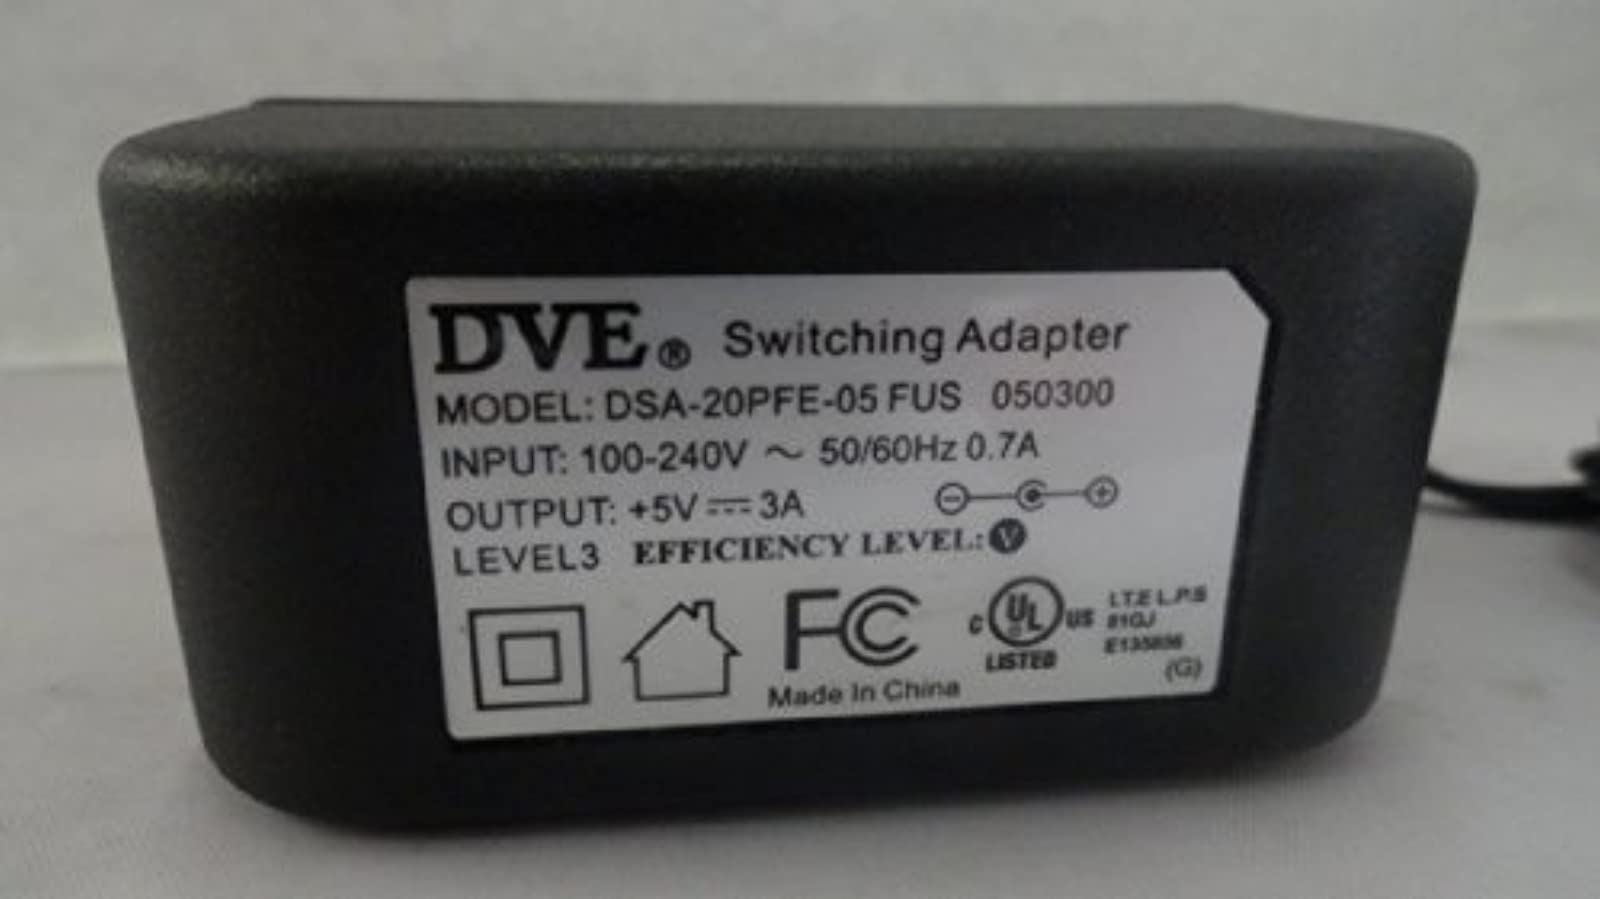 Dve AC Adapter Power Supply 5V 3A Model: DSA-20PFE-05 Fus 050300 Wall Charger To